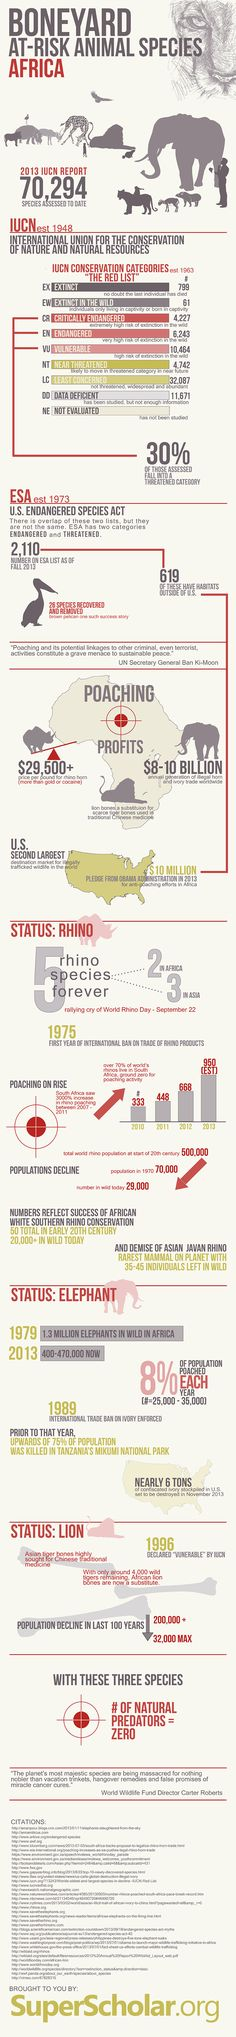 Boneyard At-Risk Animal Species Africa #Animal #Africa | #infographics repinned by @Piktochar